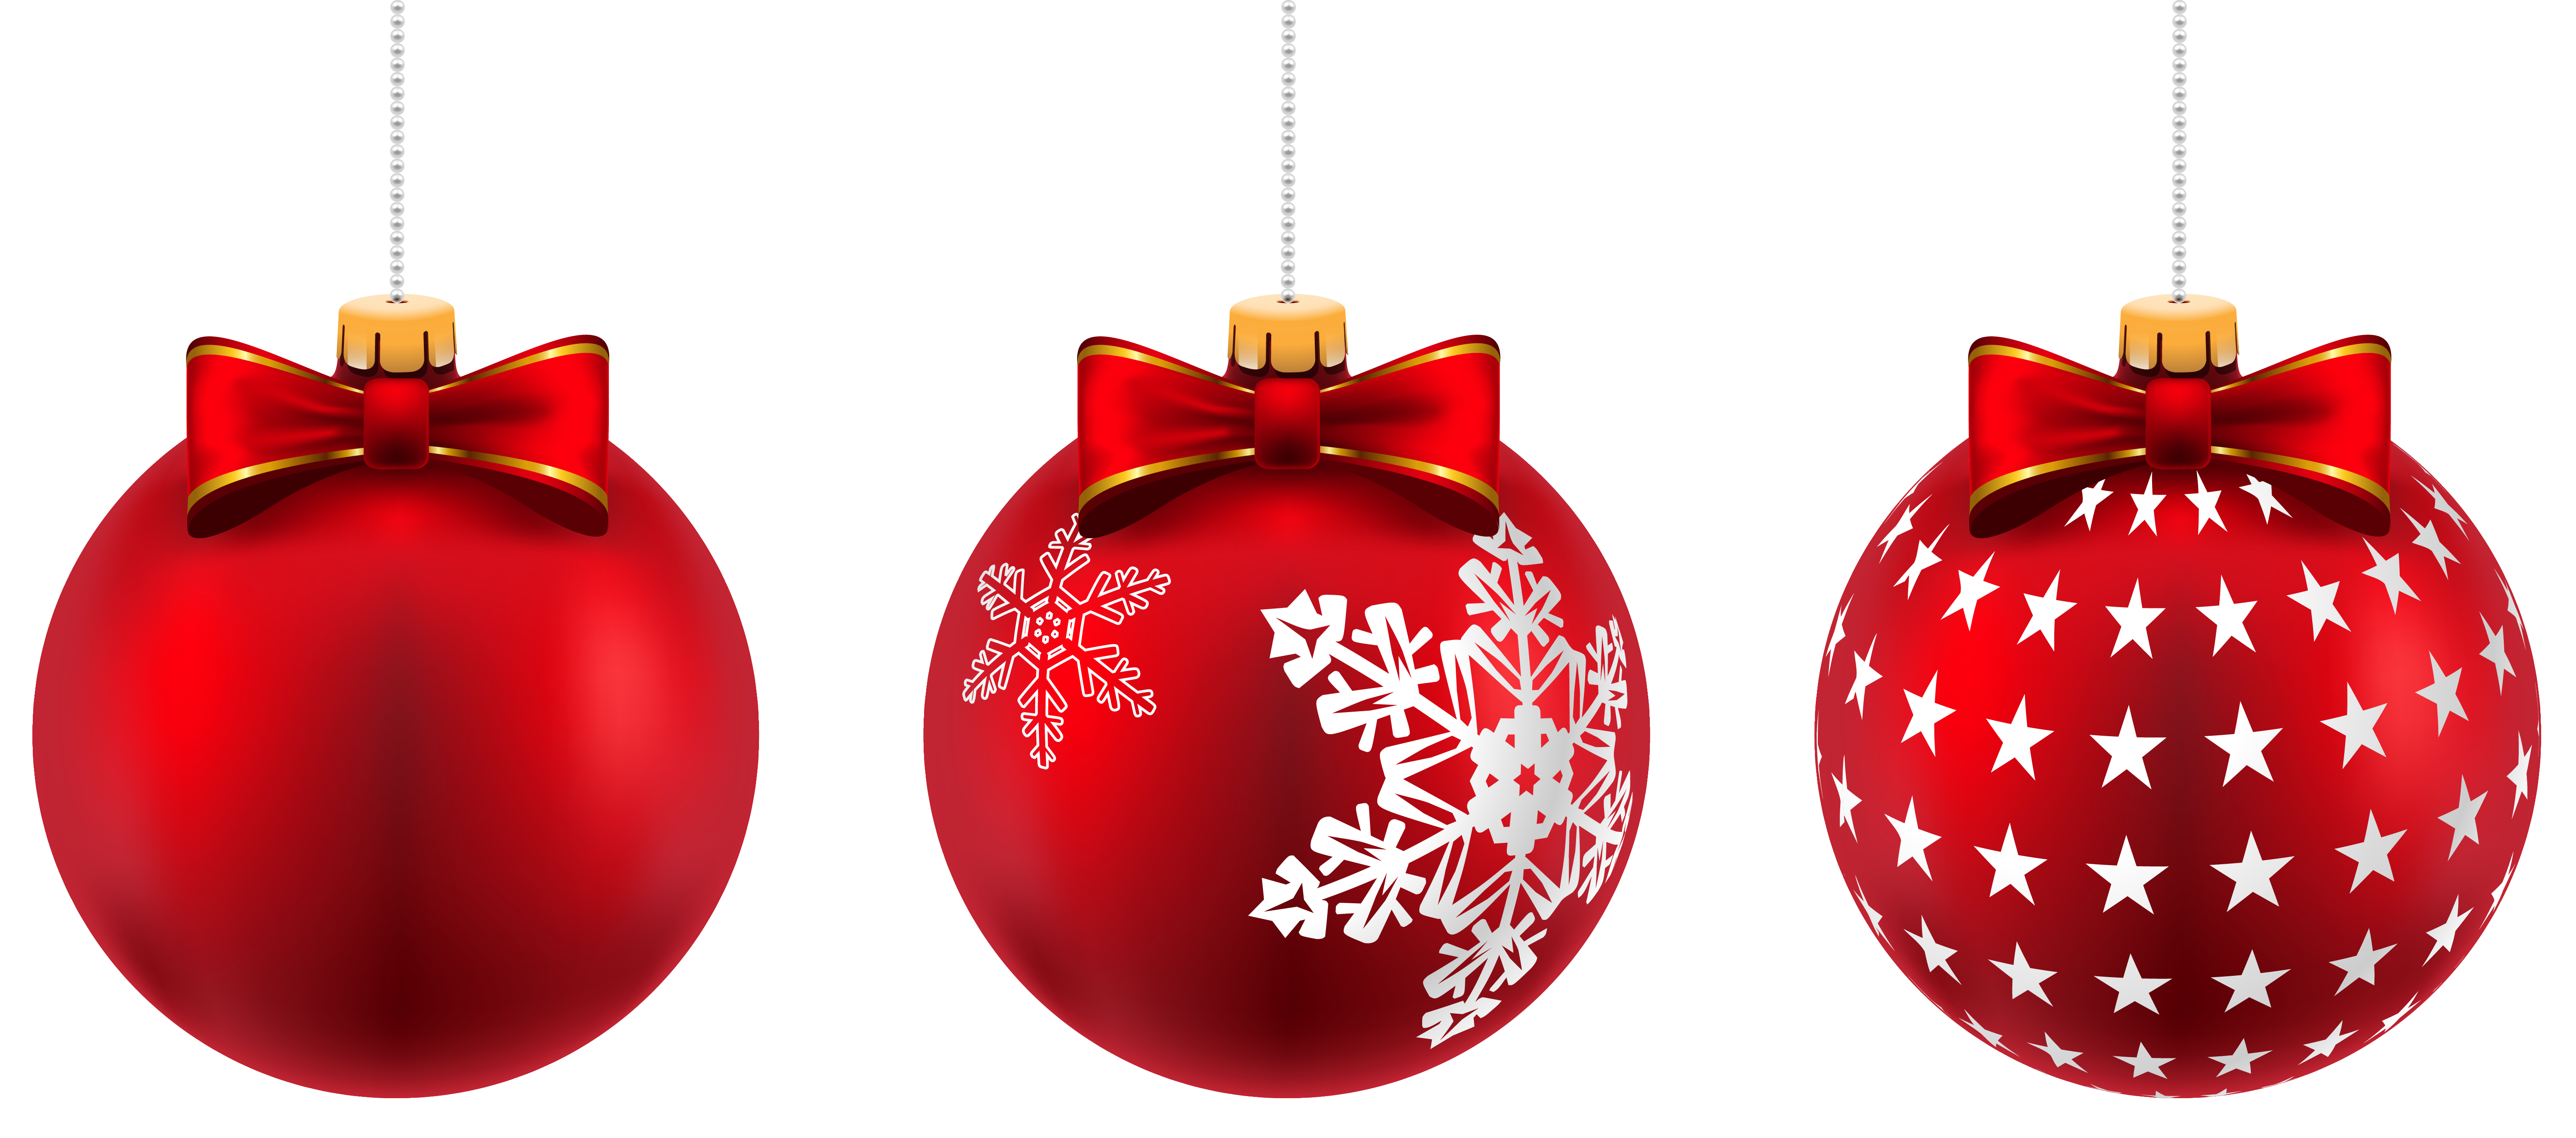 Beautiful Red Christmas Balls Png Clip Art Image Gallery Yopriceville High Quality Images And Transpar Christmas Balls Image Christmas Balls Red Christmas